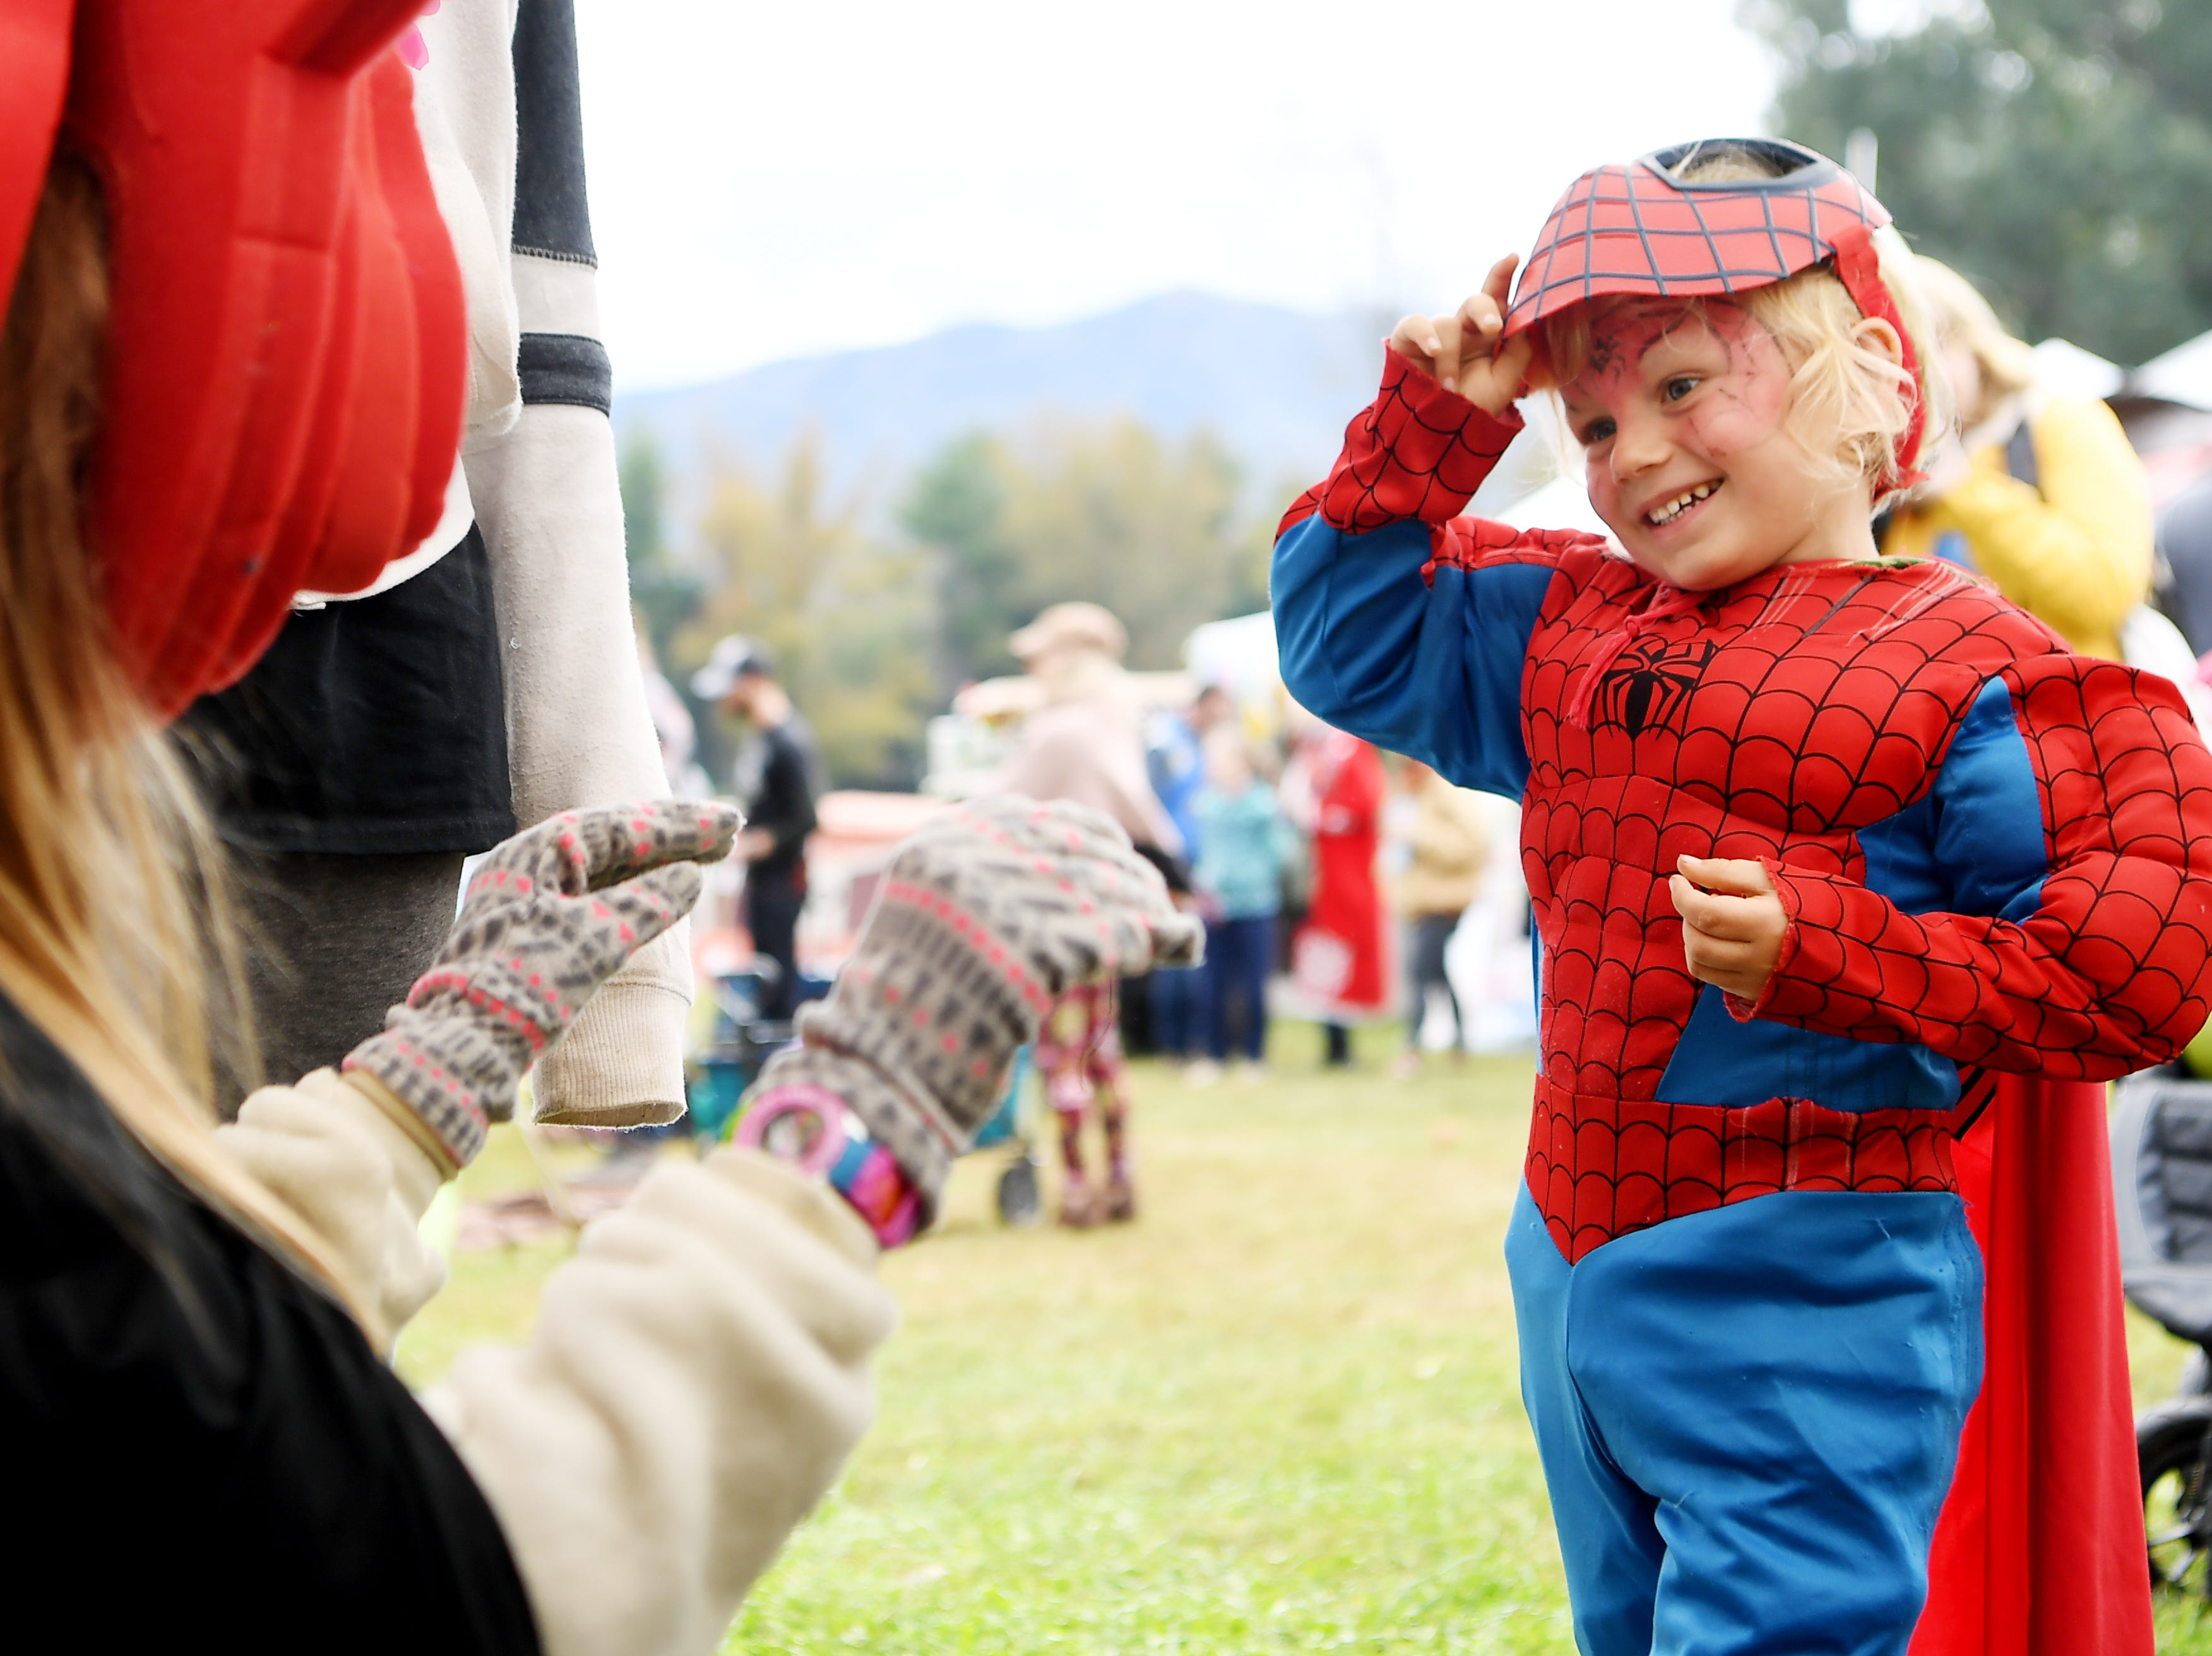 Jade McDowell, 4, lifts his Spiderman mask in the costume tent as he plays with volunteer Haddie Herr, 12, at the 47th LEAF Festival at Lake Eden in Black Mountain Oct. 20, 2018.